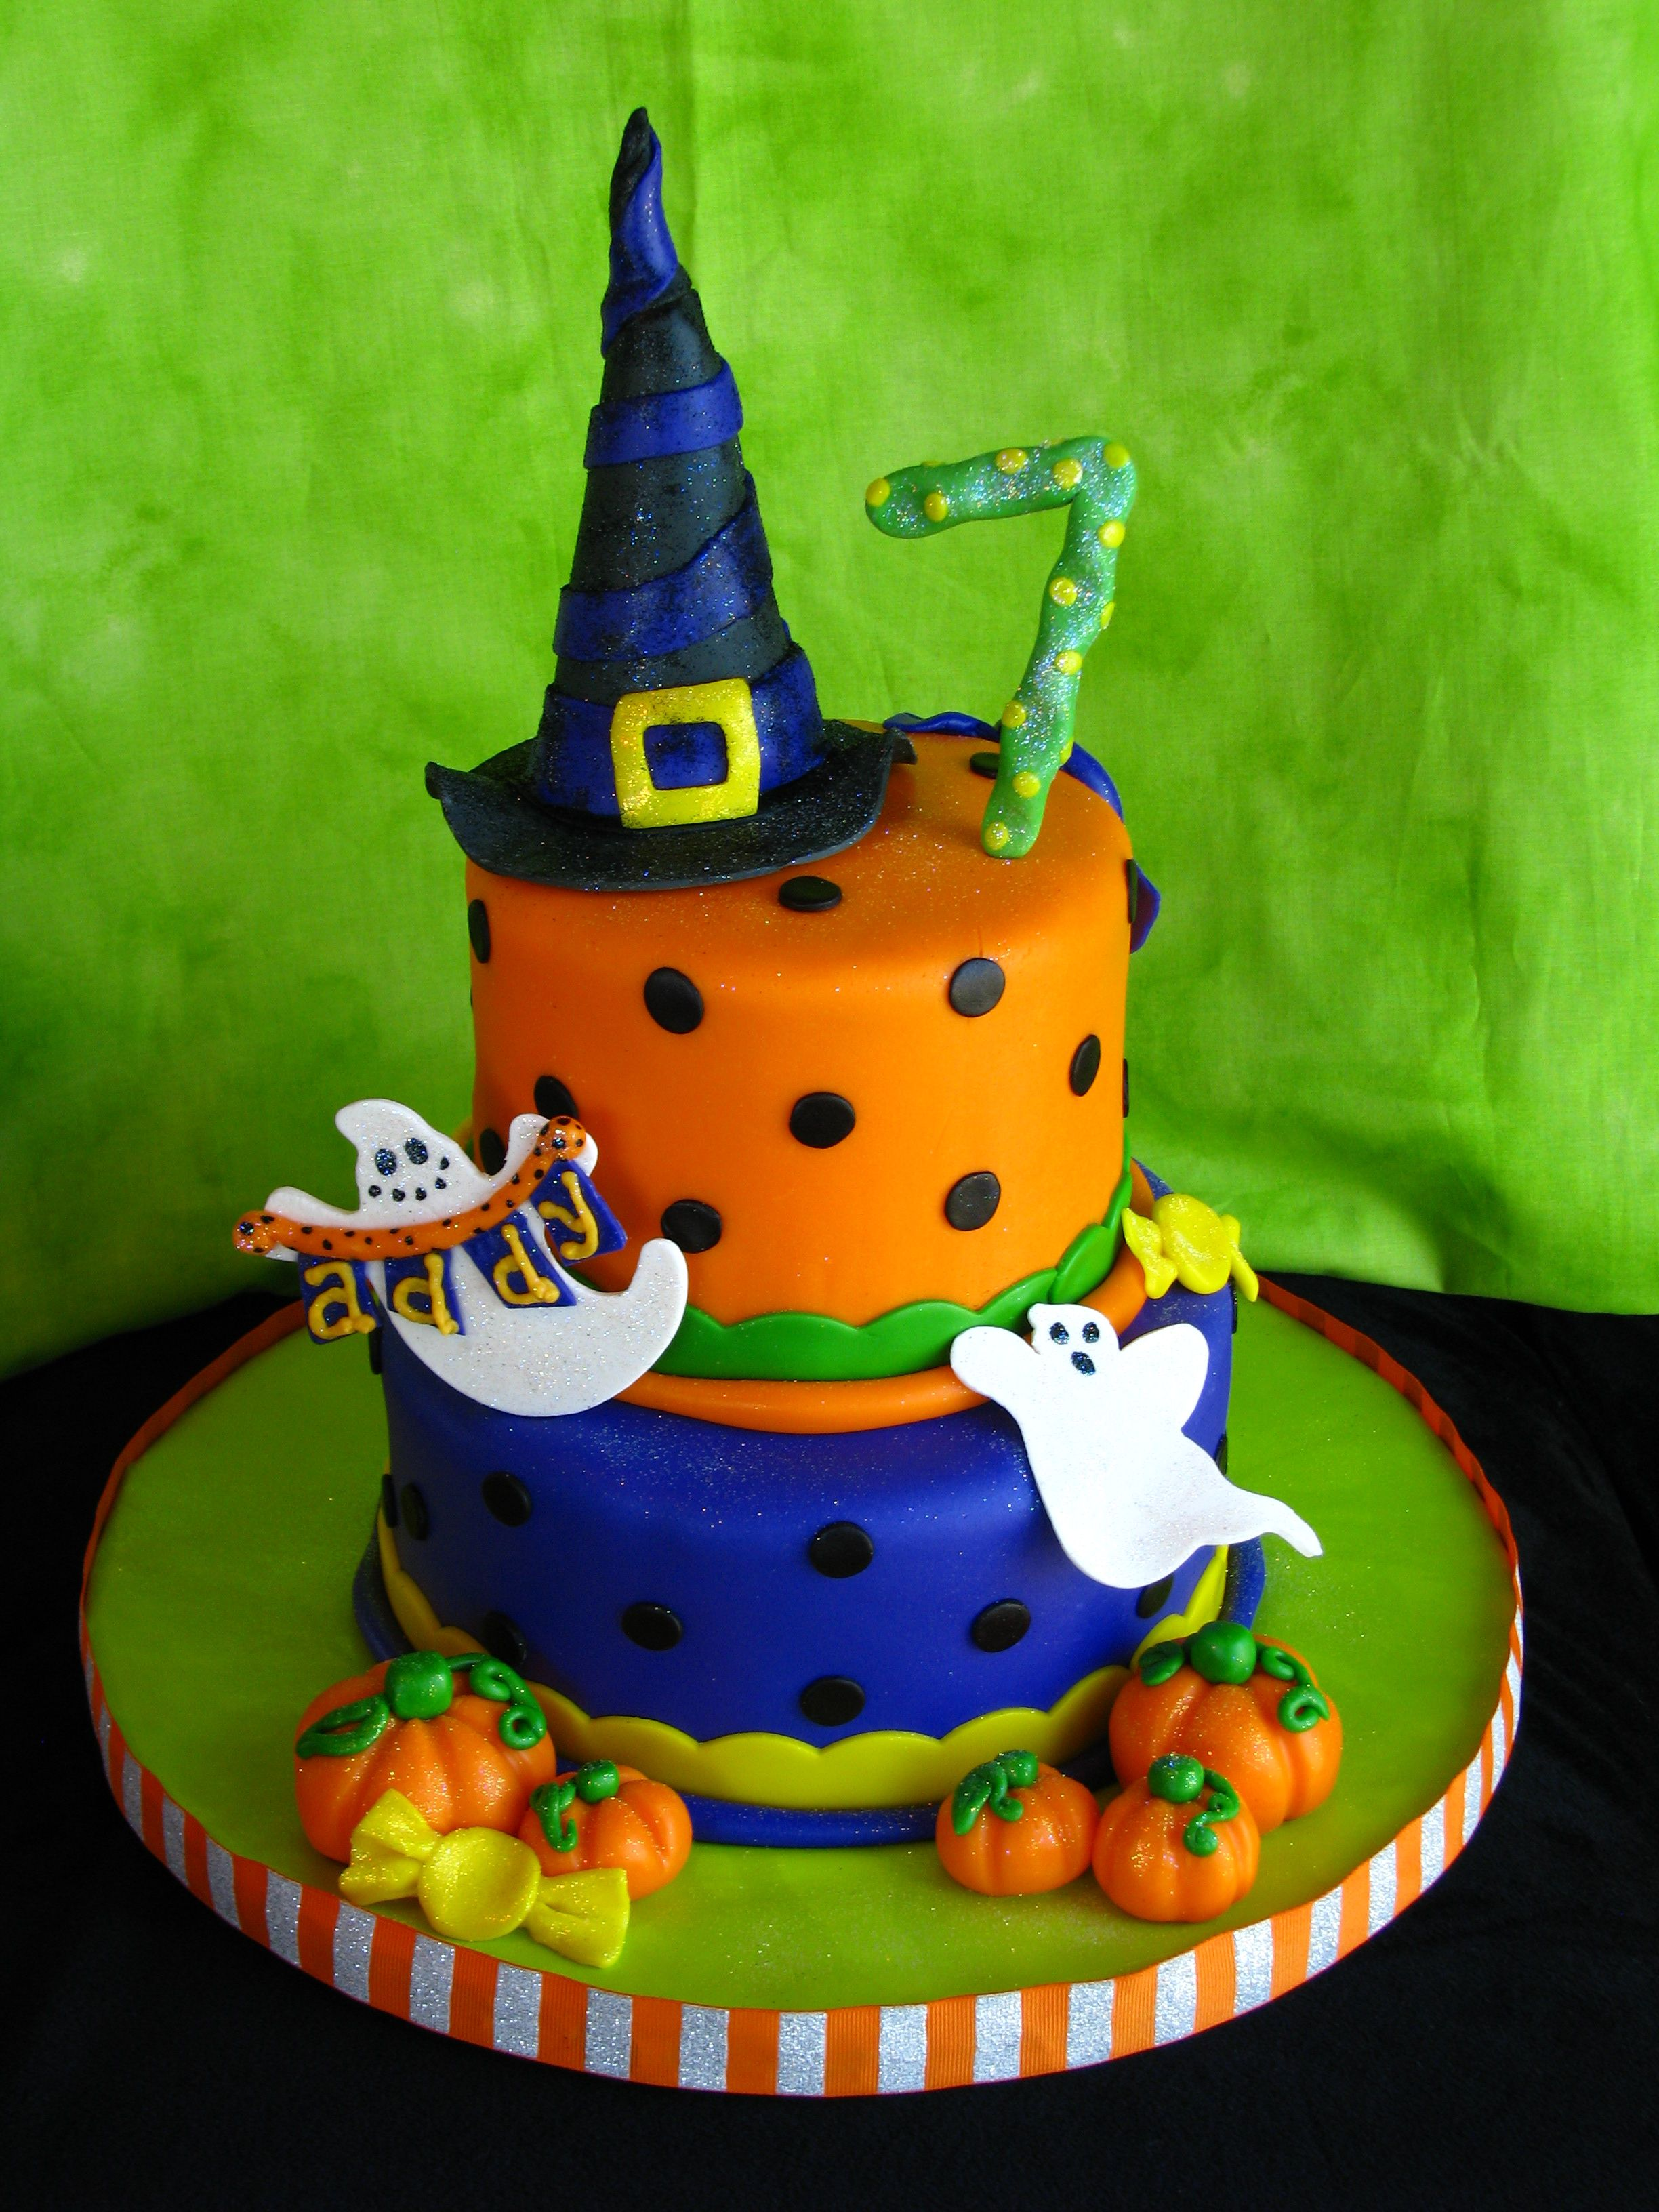 Halloween Birthday Cake This was made for my niece for her